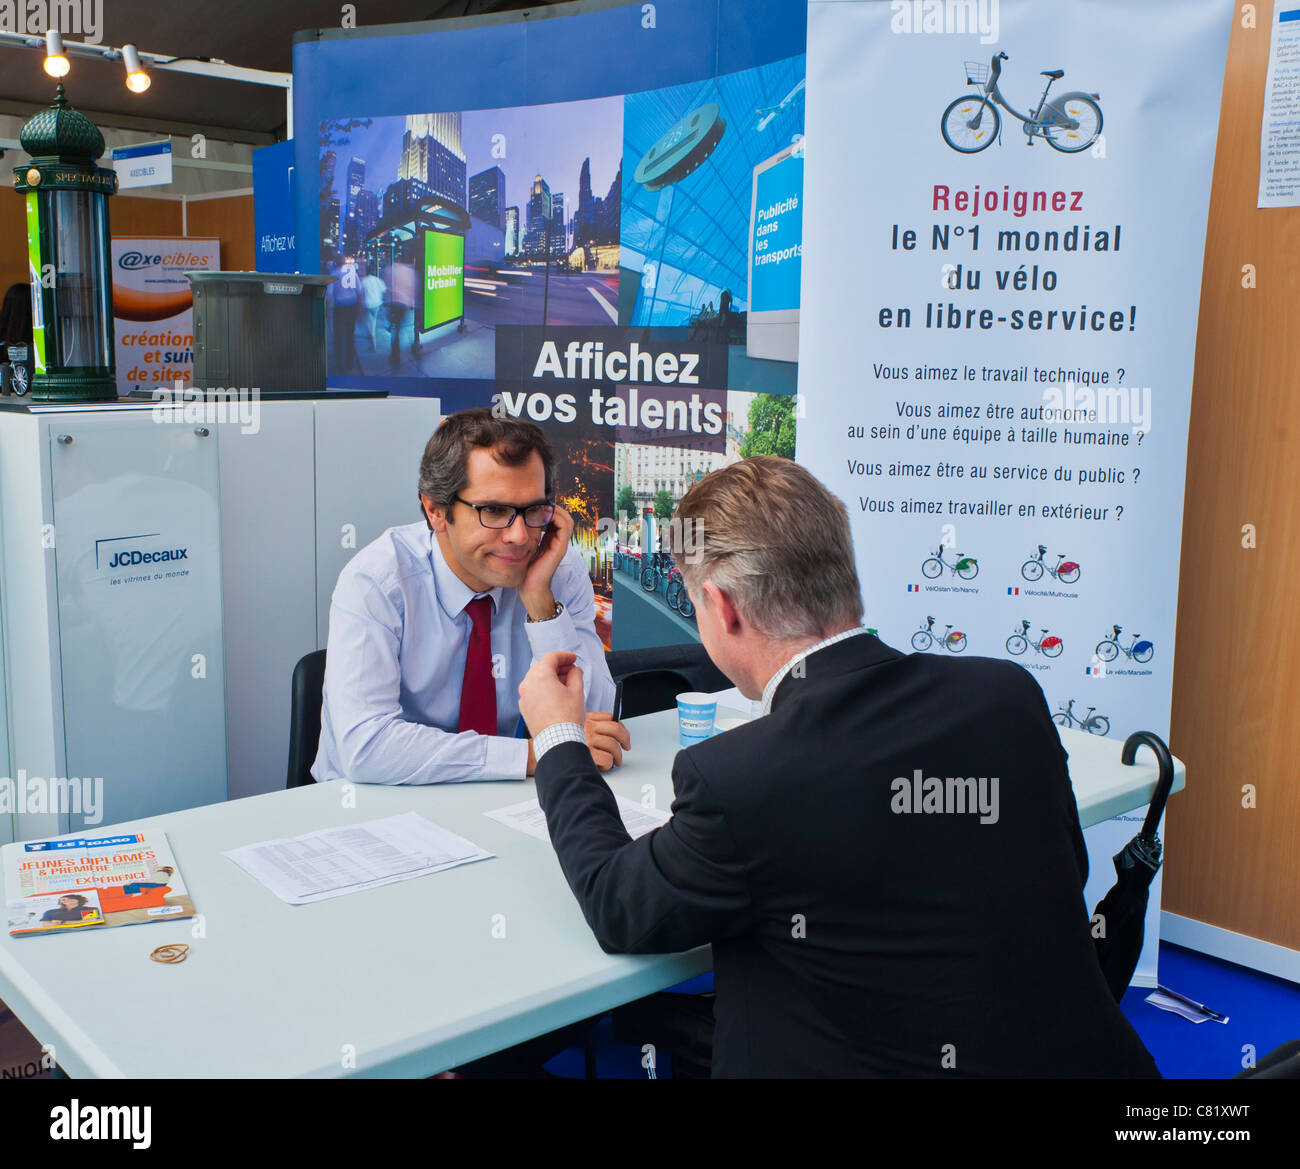 Paris, France, Man at Paris Jobs Fair, Job Seeker at 'J.C. Decaux' Corporation, Urban Advertising and Velib - Stock Image